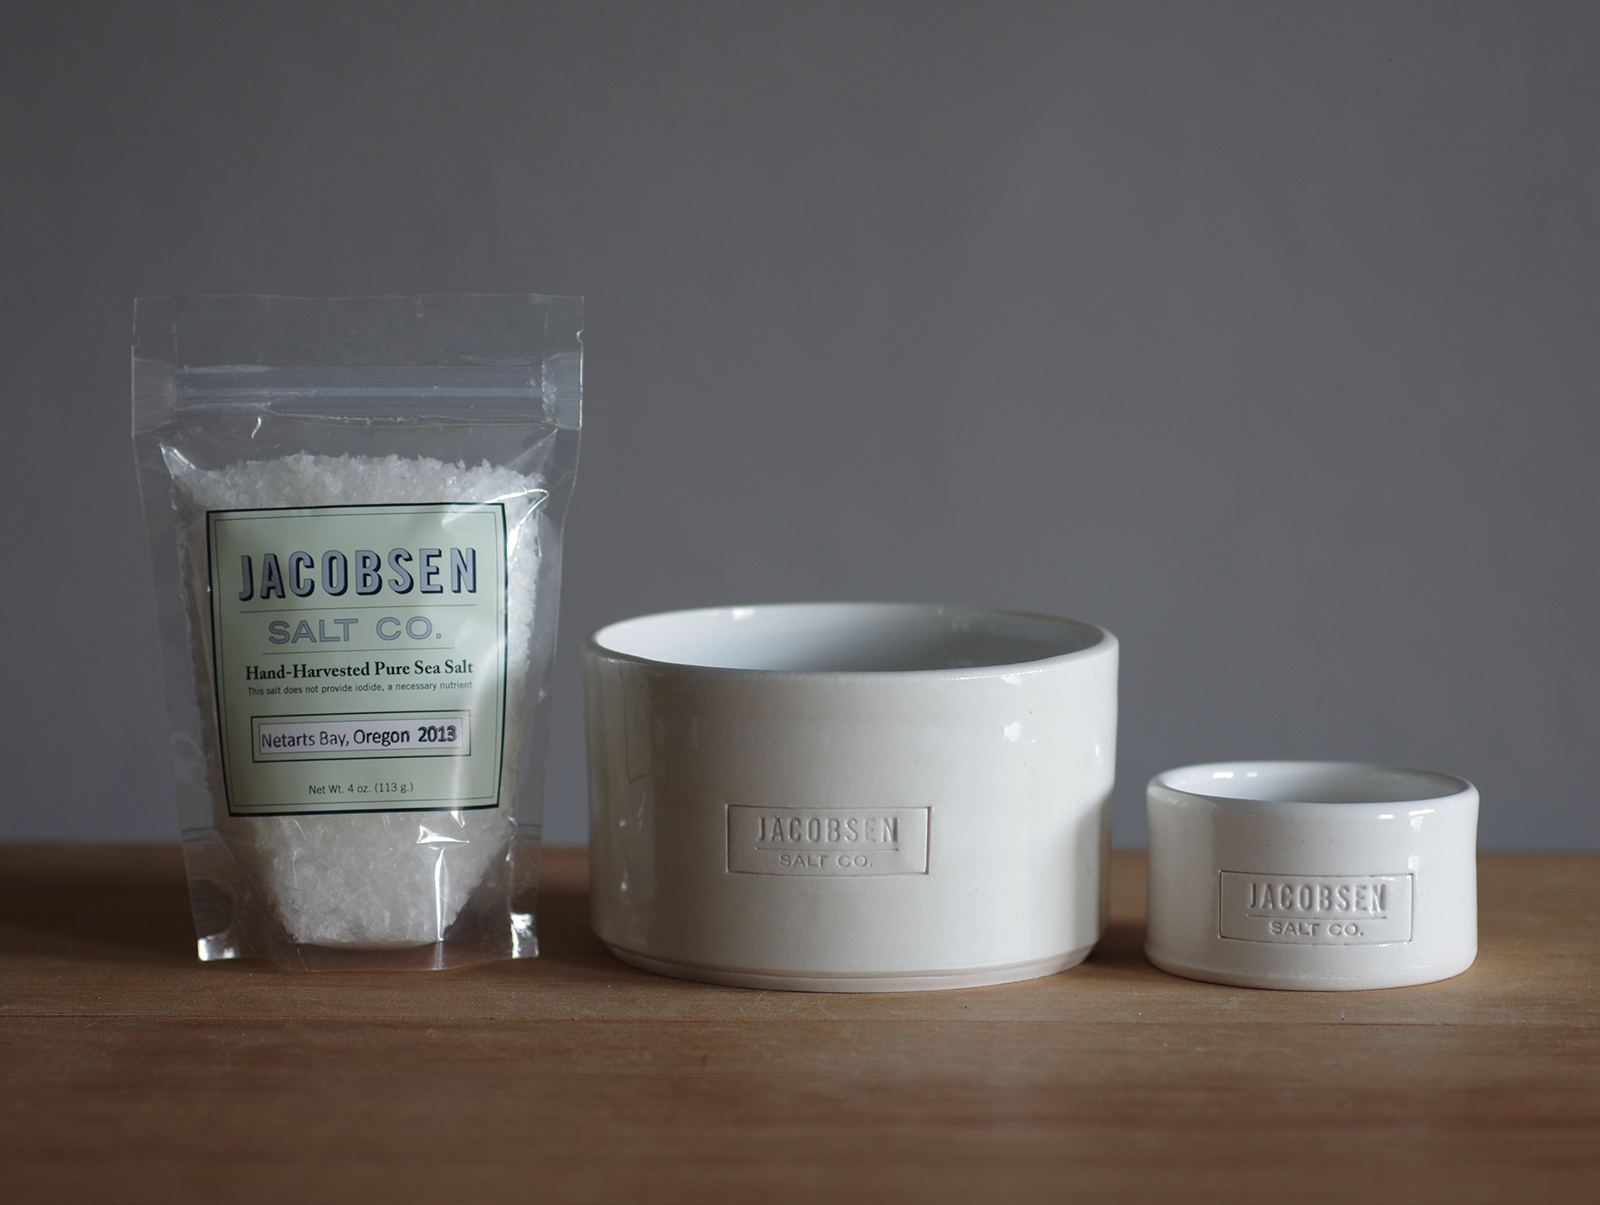 jacobsen salt cellars as seen in williams and sonoma